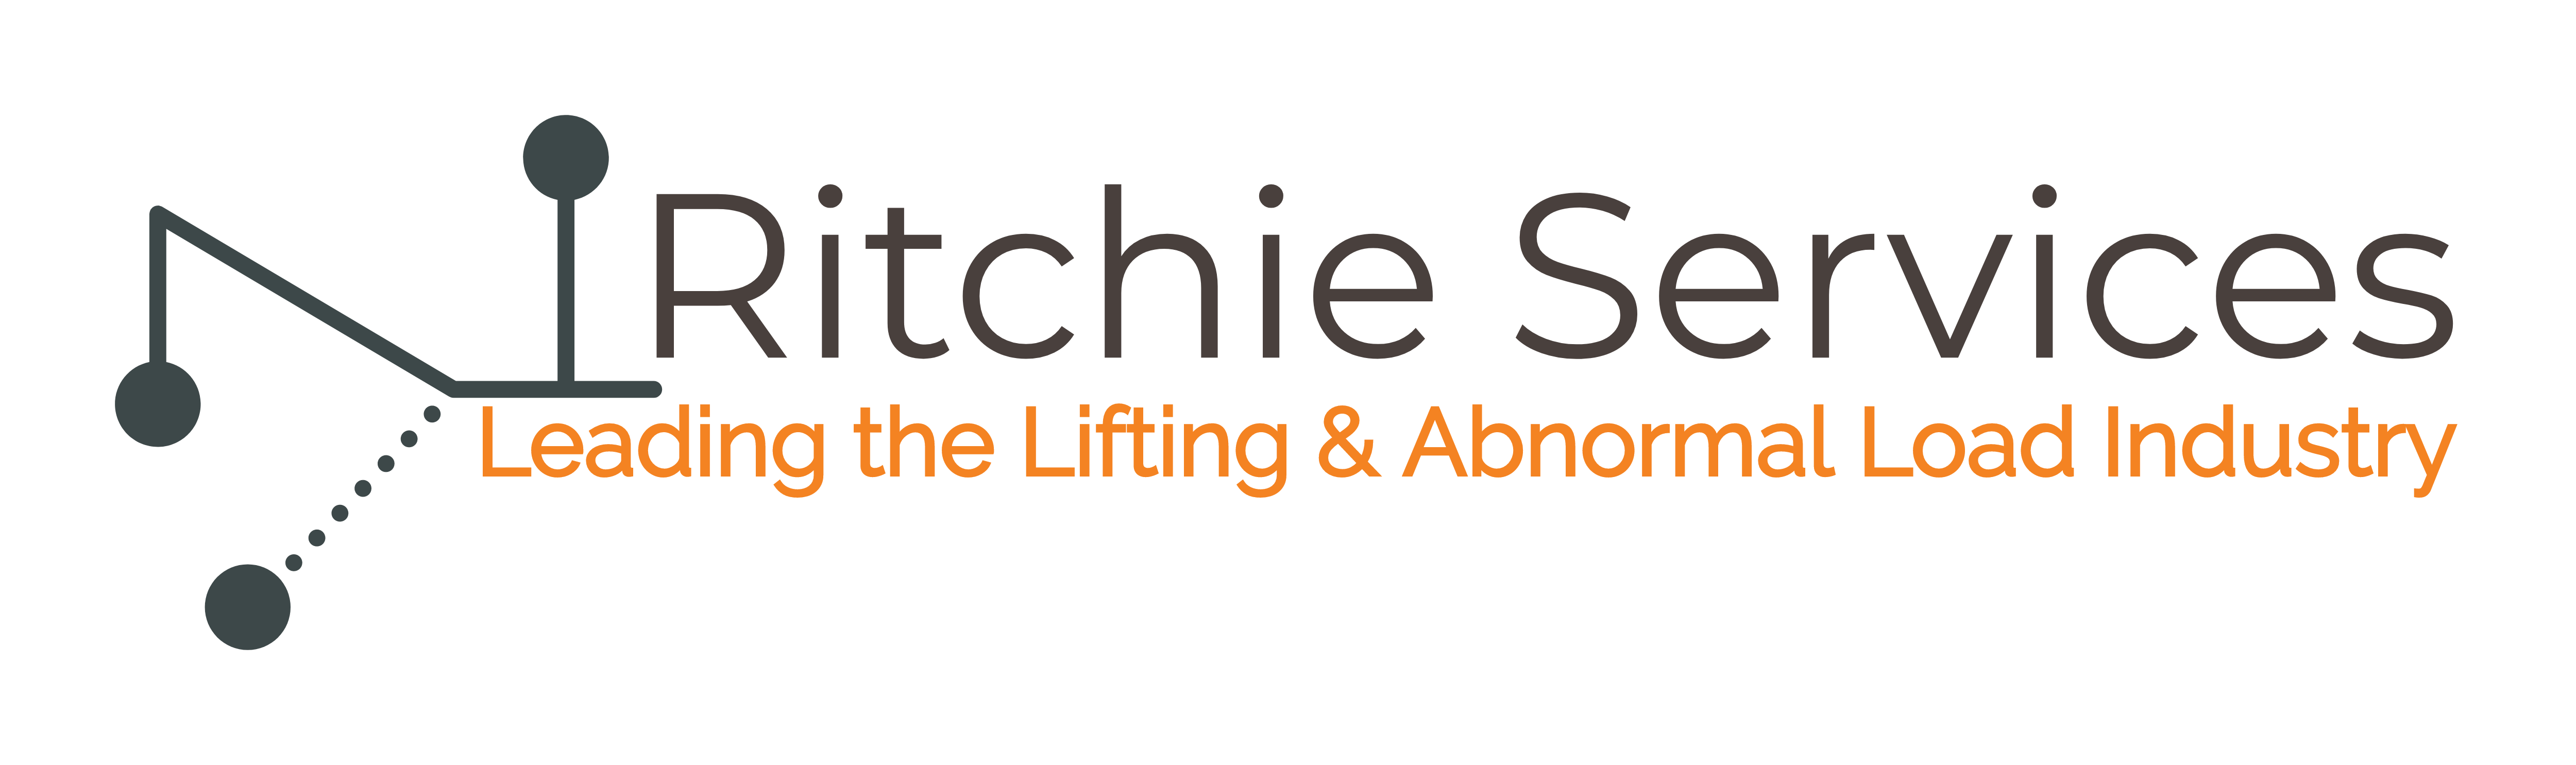 Ritchie Services Logo